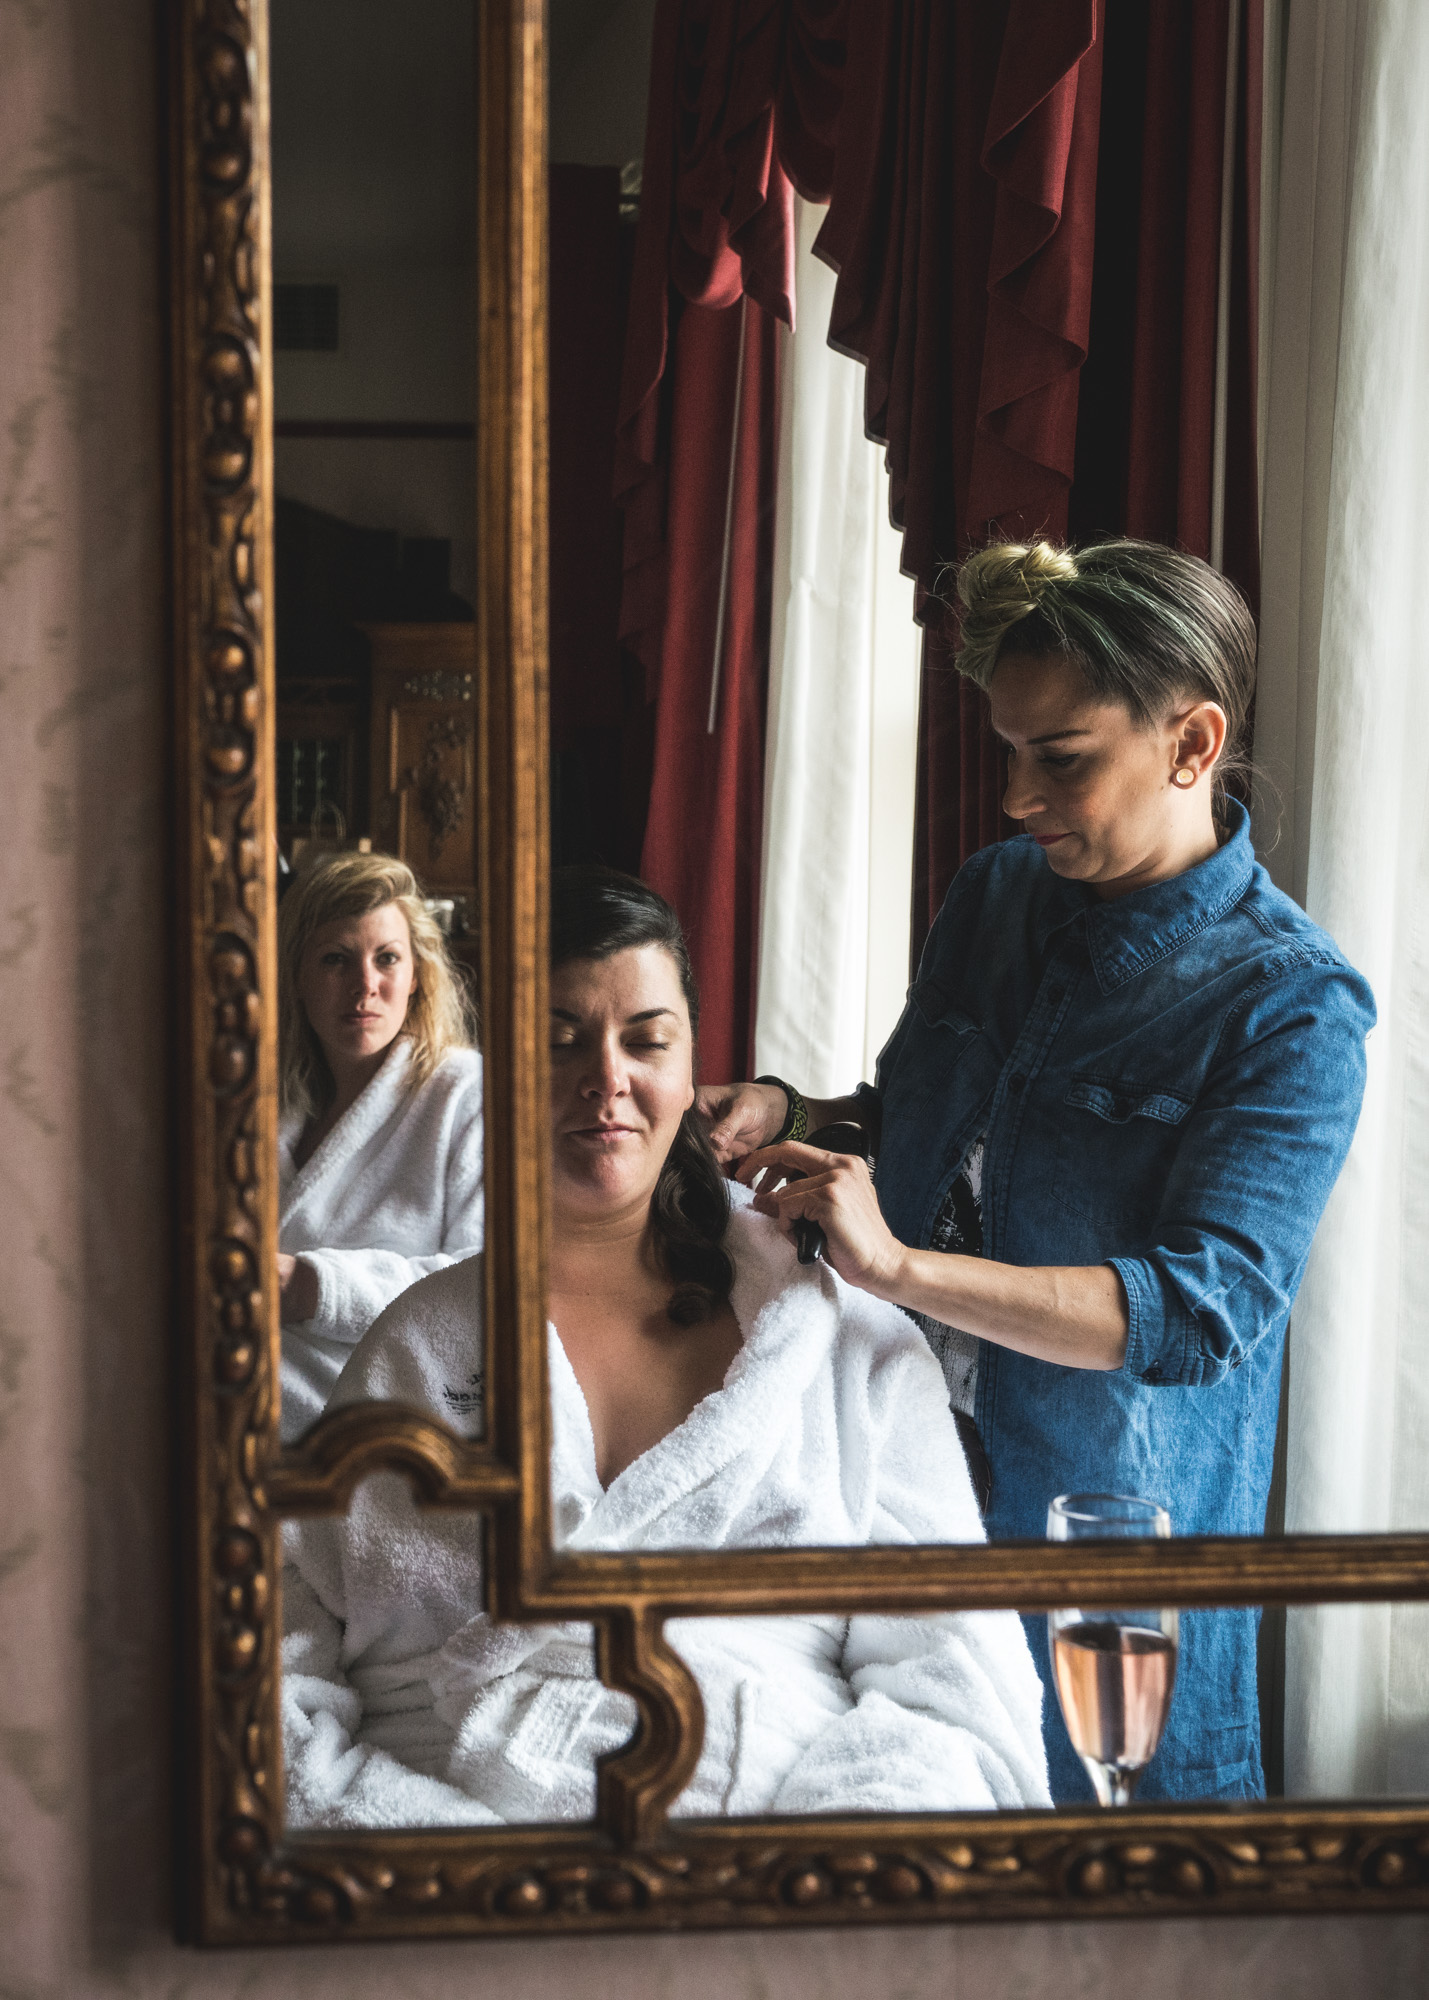 Color photo of woman wearing a white robe having her hair fixed by a woman in a blue shirt and blue streak in her hair with her blond friend in the background, also wearing a white robe, all of this reflected in a gilded mirror. Taken during the bride's wedding preparation photography session in their hotel suite in the Hotel Boulderado in Boulder, Colorado